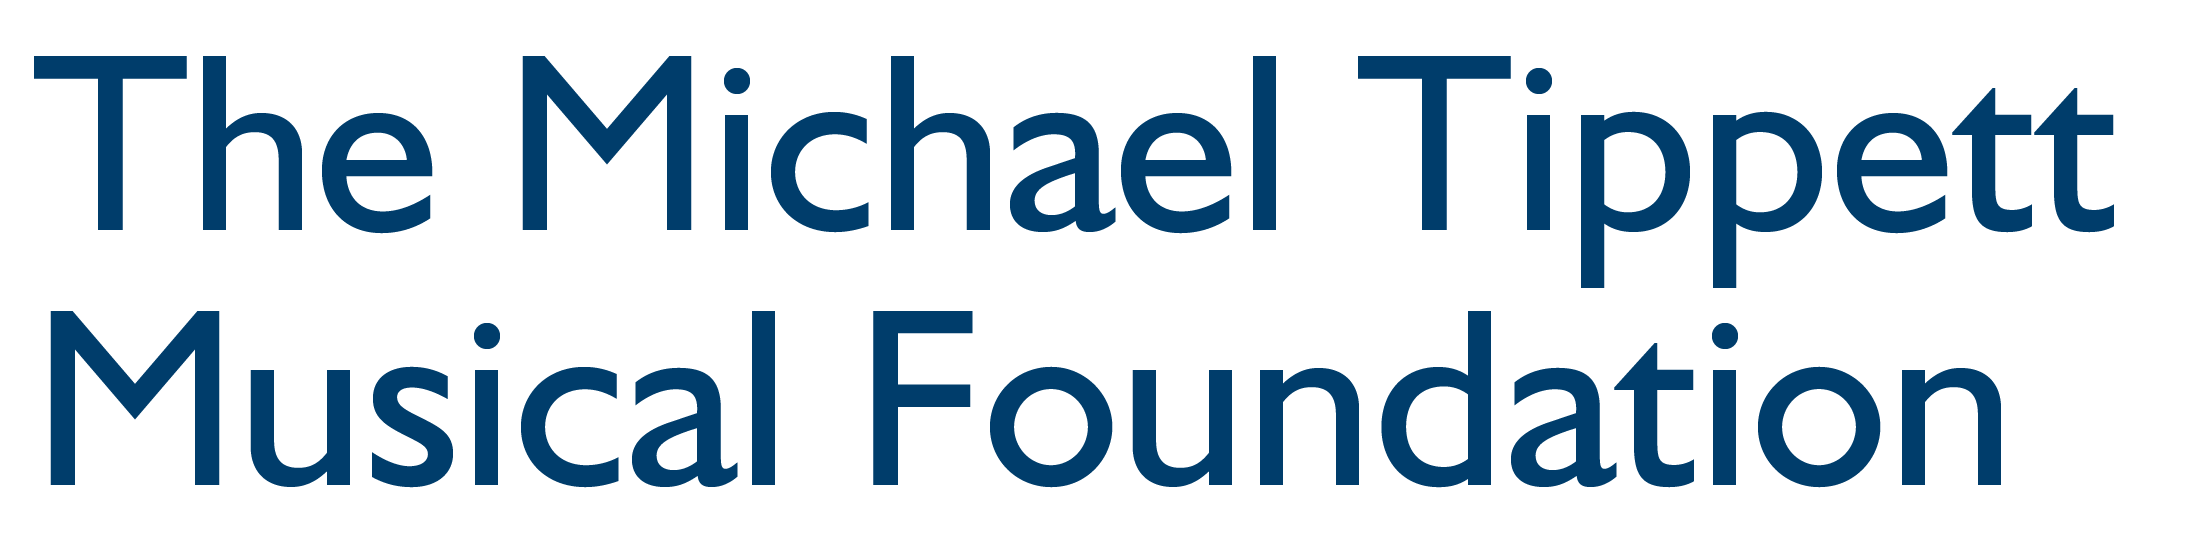 The Michael Tippett Musical Foundation